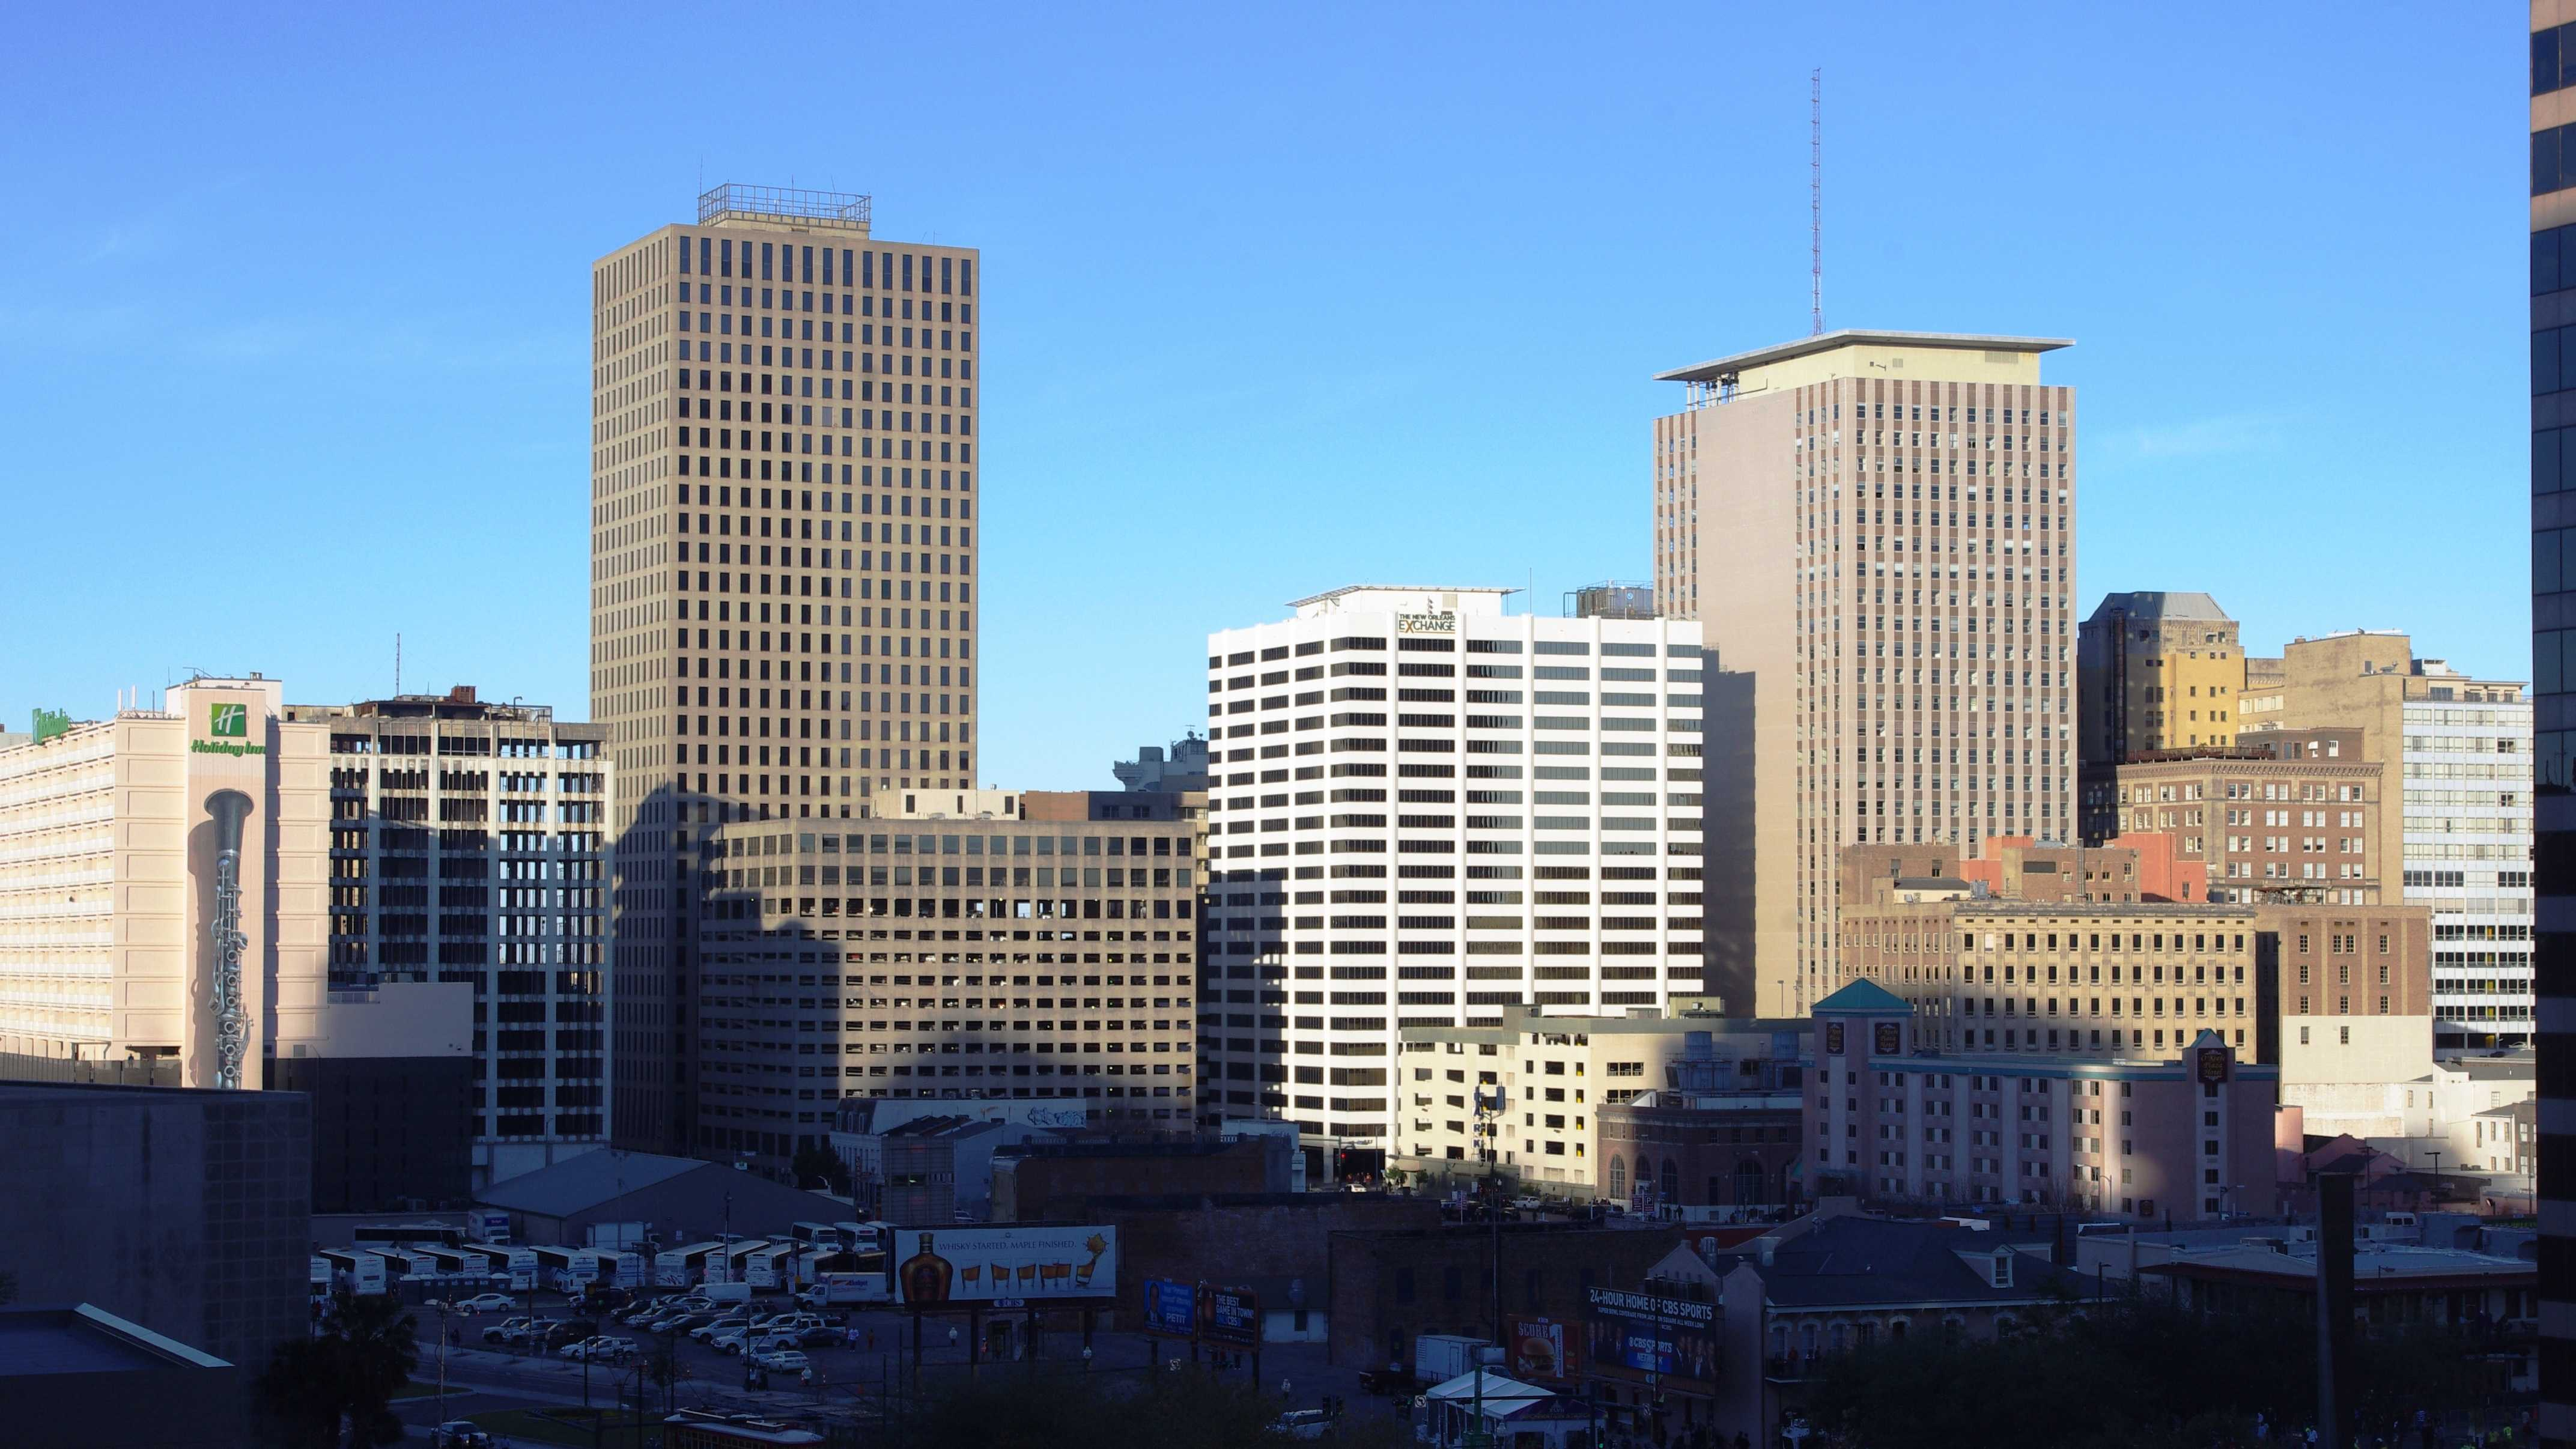 Shadows fall on downtown New Orleans